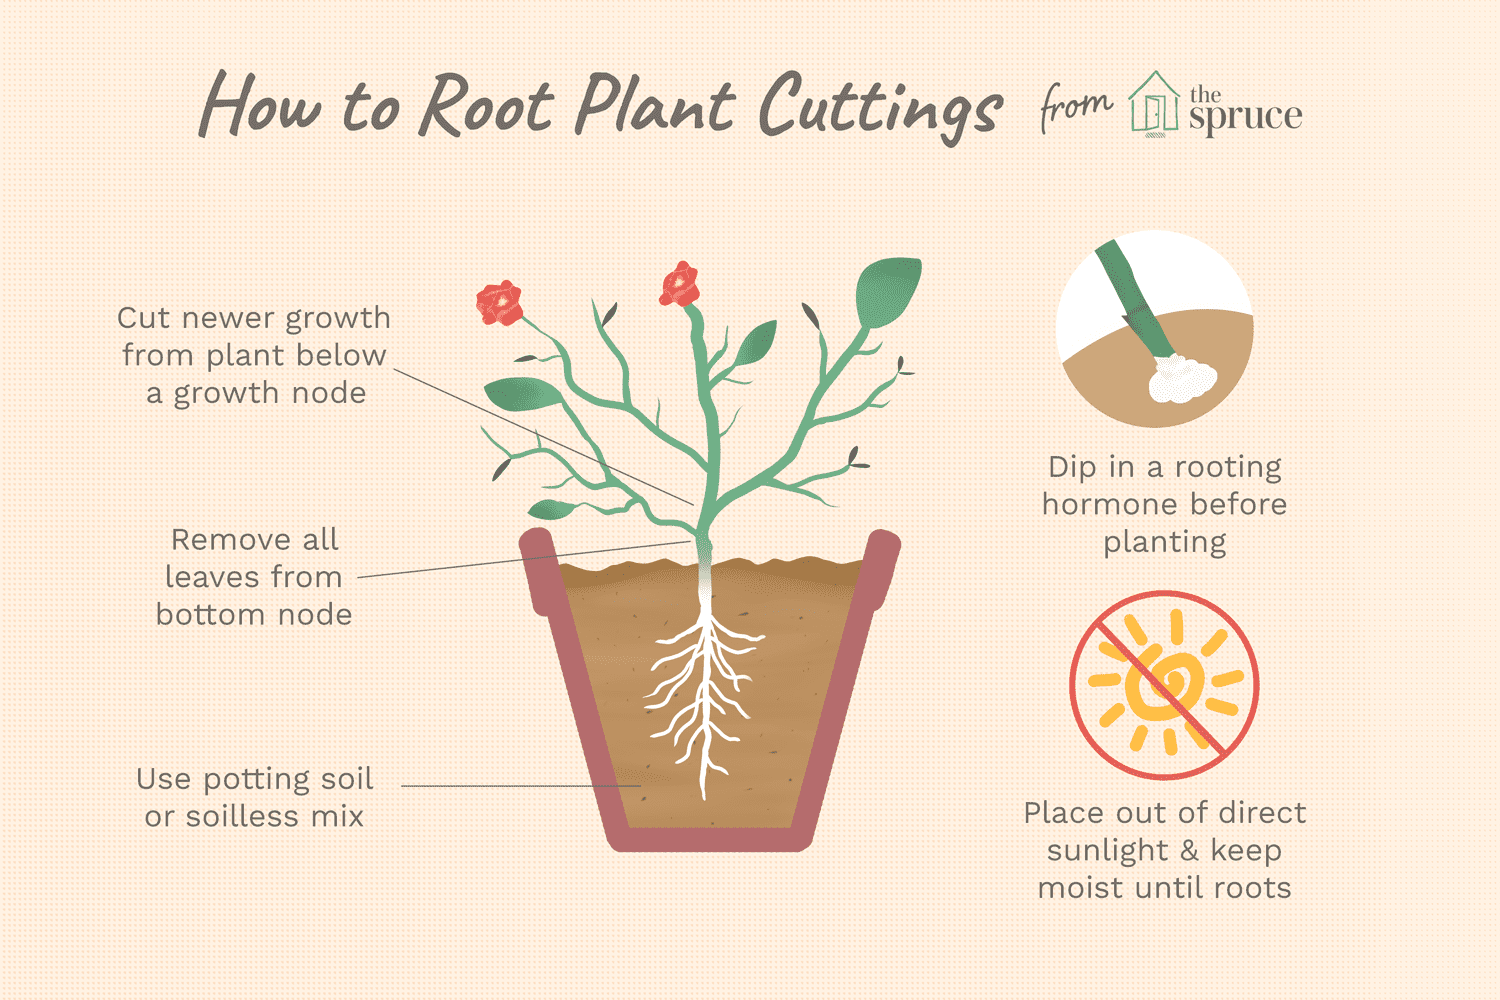 How to Propagate Plants by Rooting Stem Cuttings